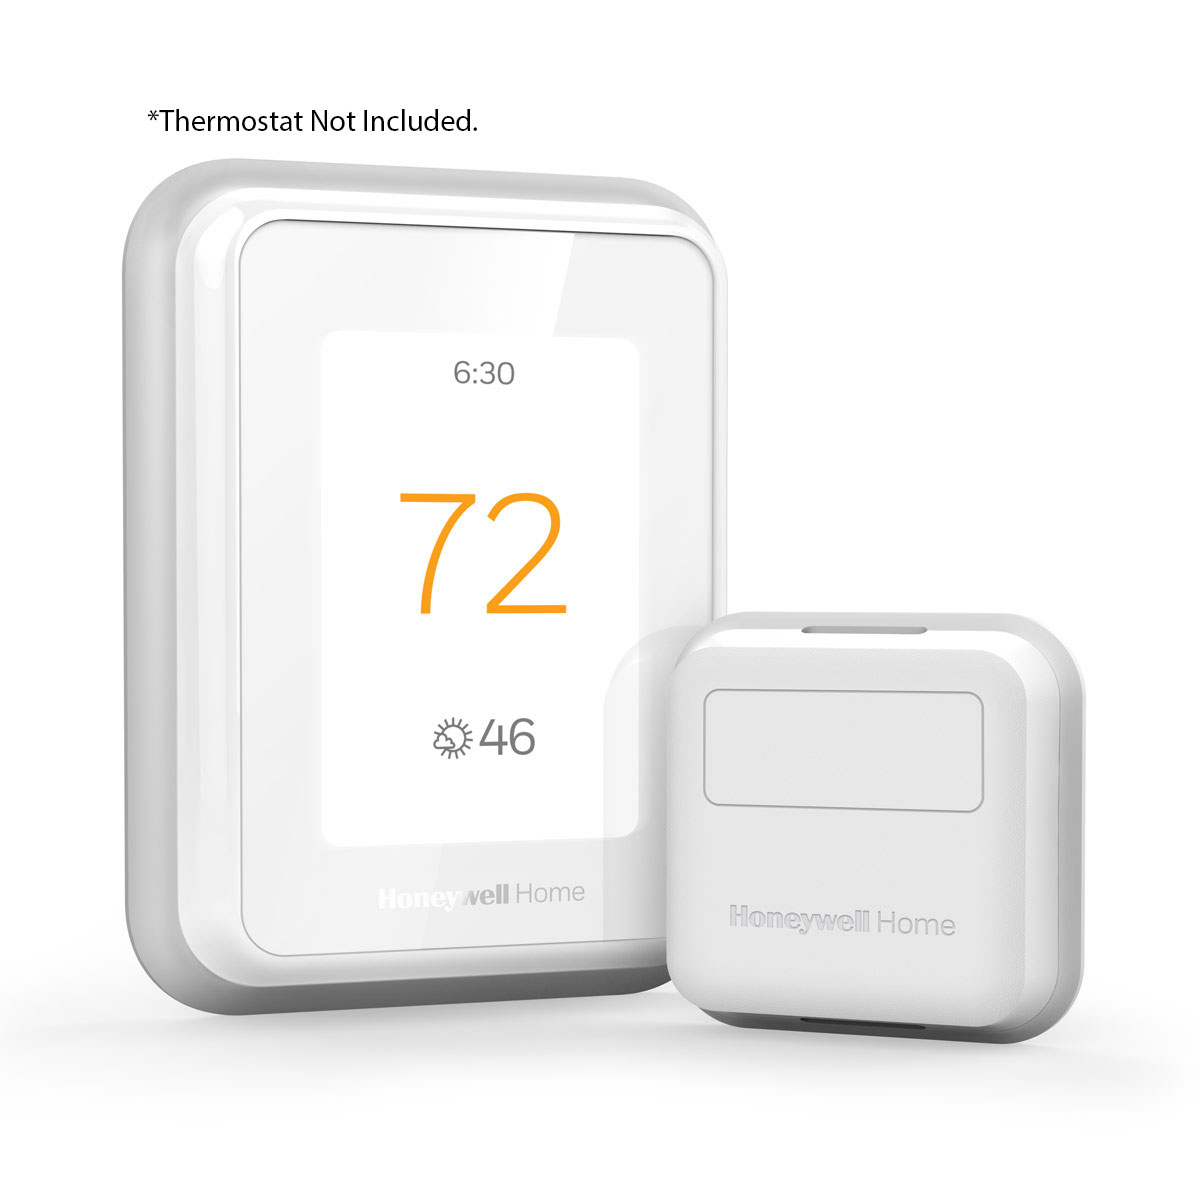 Honeywell Smart Room Sensor, For T9/T10 Honeywell Home Thermostats - RCHTSENSOR-1PK/E